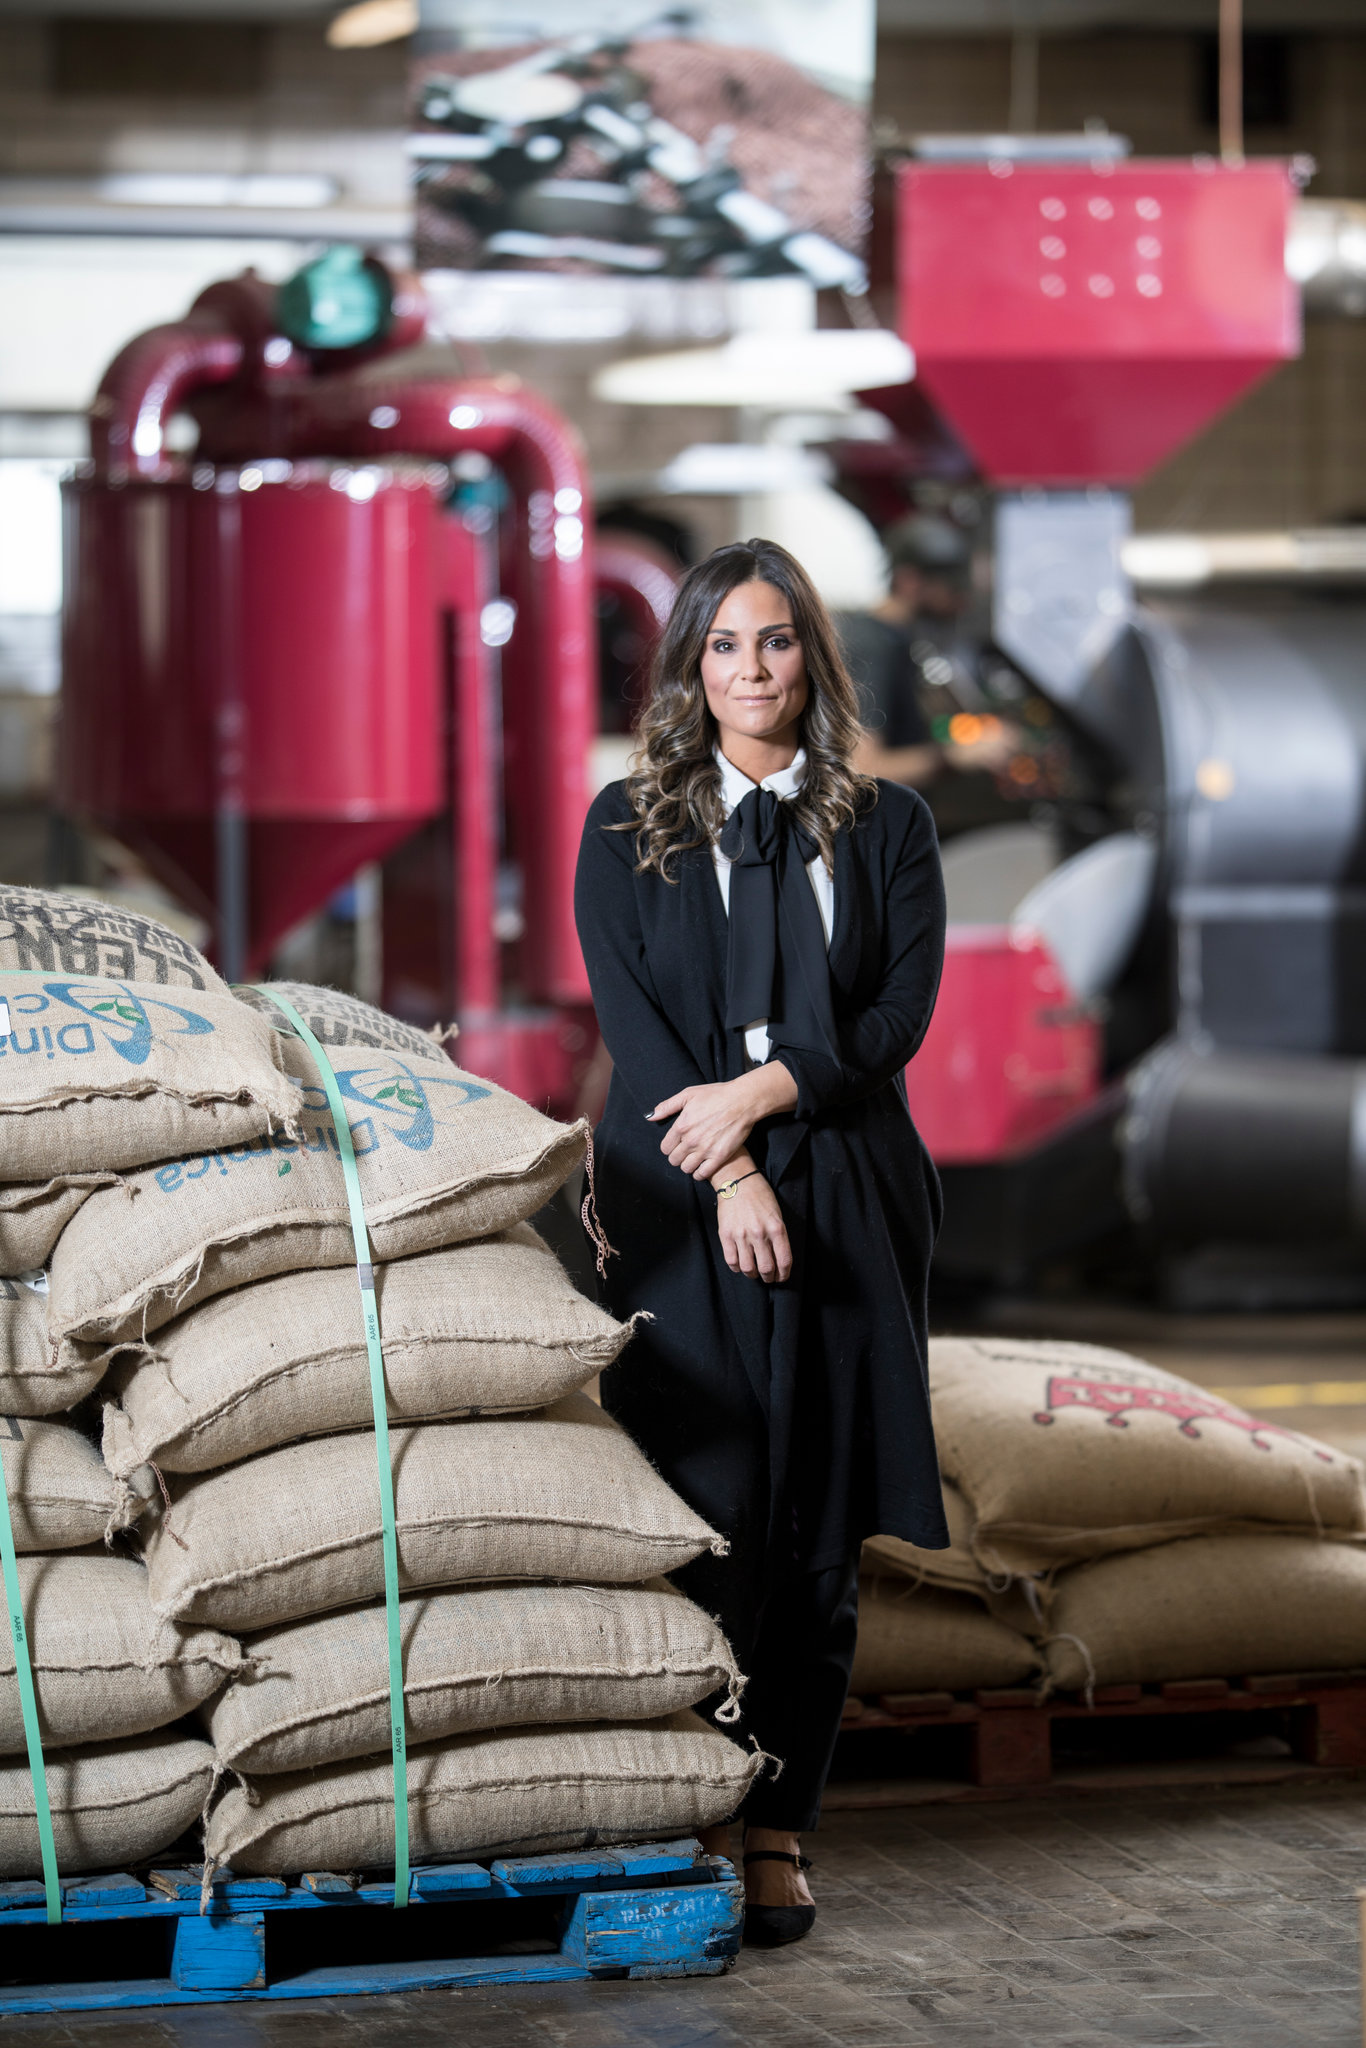 """Alyza Bohbot at the headquarters of Alakef Coffee Roasters, which was founded by her parents. """"I don't want to come in and keep things ho-hum,"""" she told them.CreditCreditJenn Ackerman for The New York Times"""